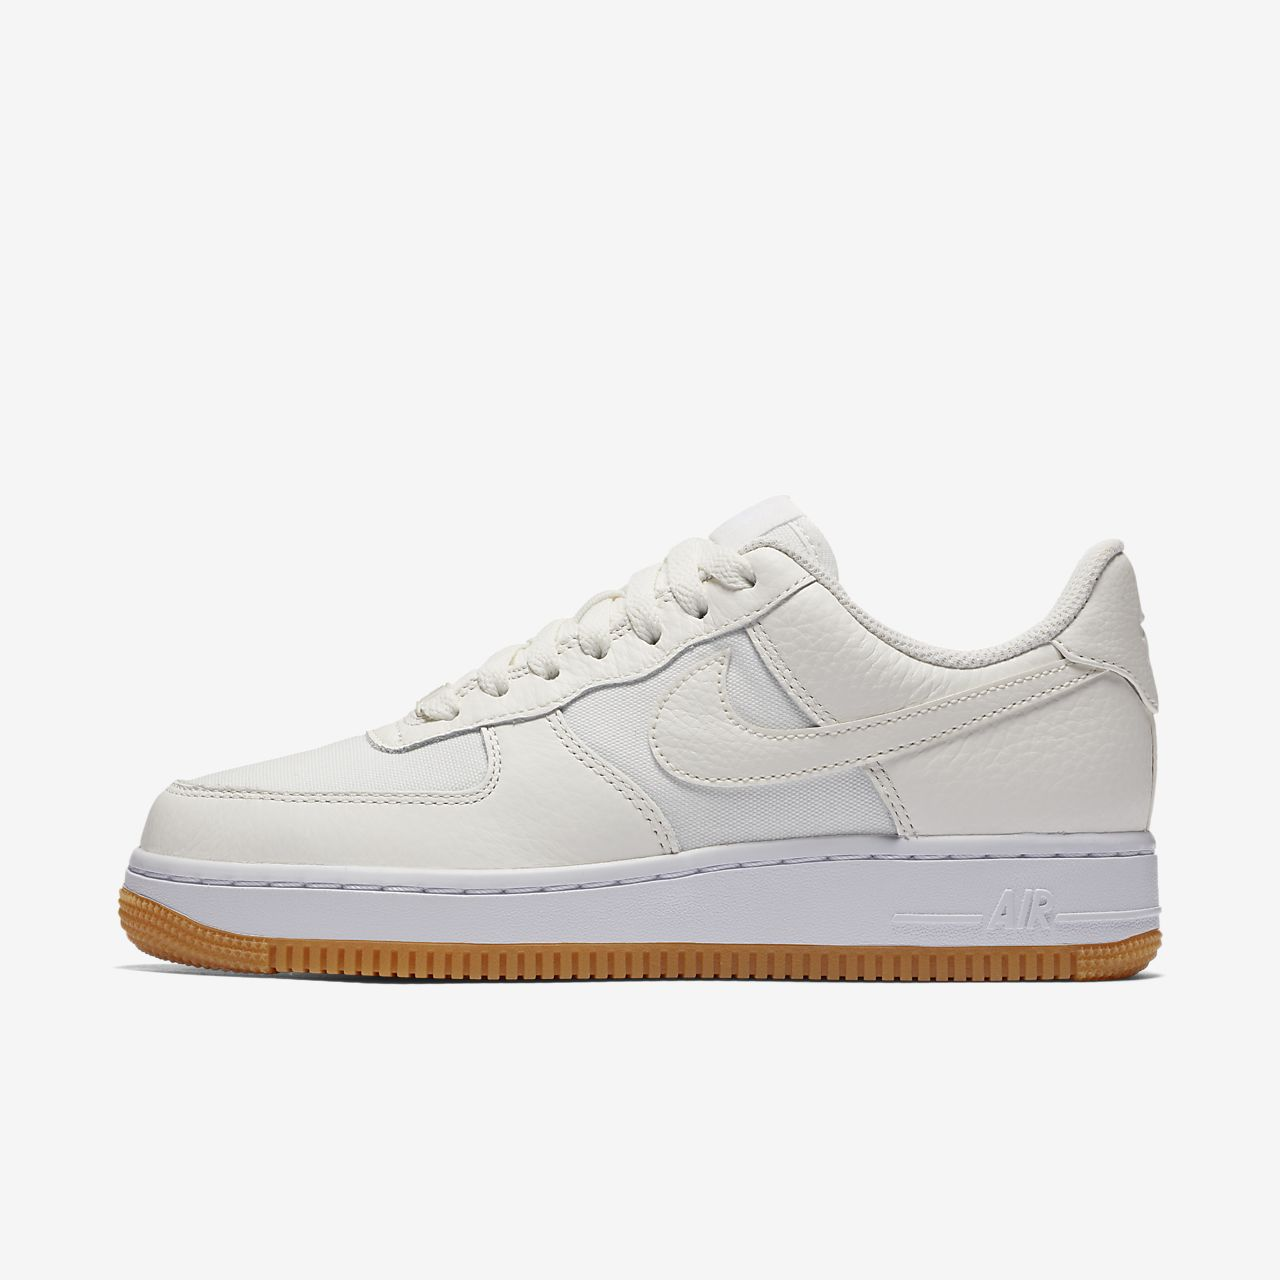 nike air force 1 blue gum sole nz